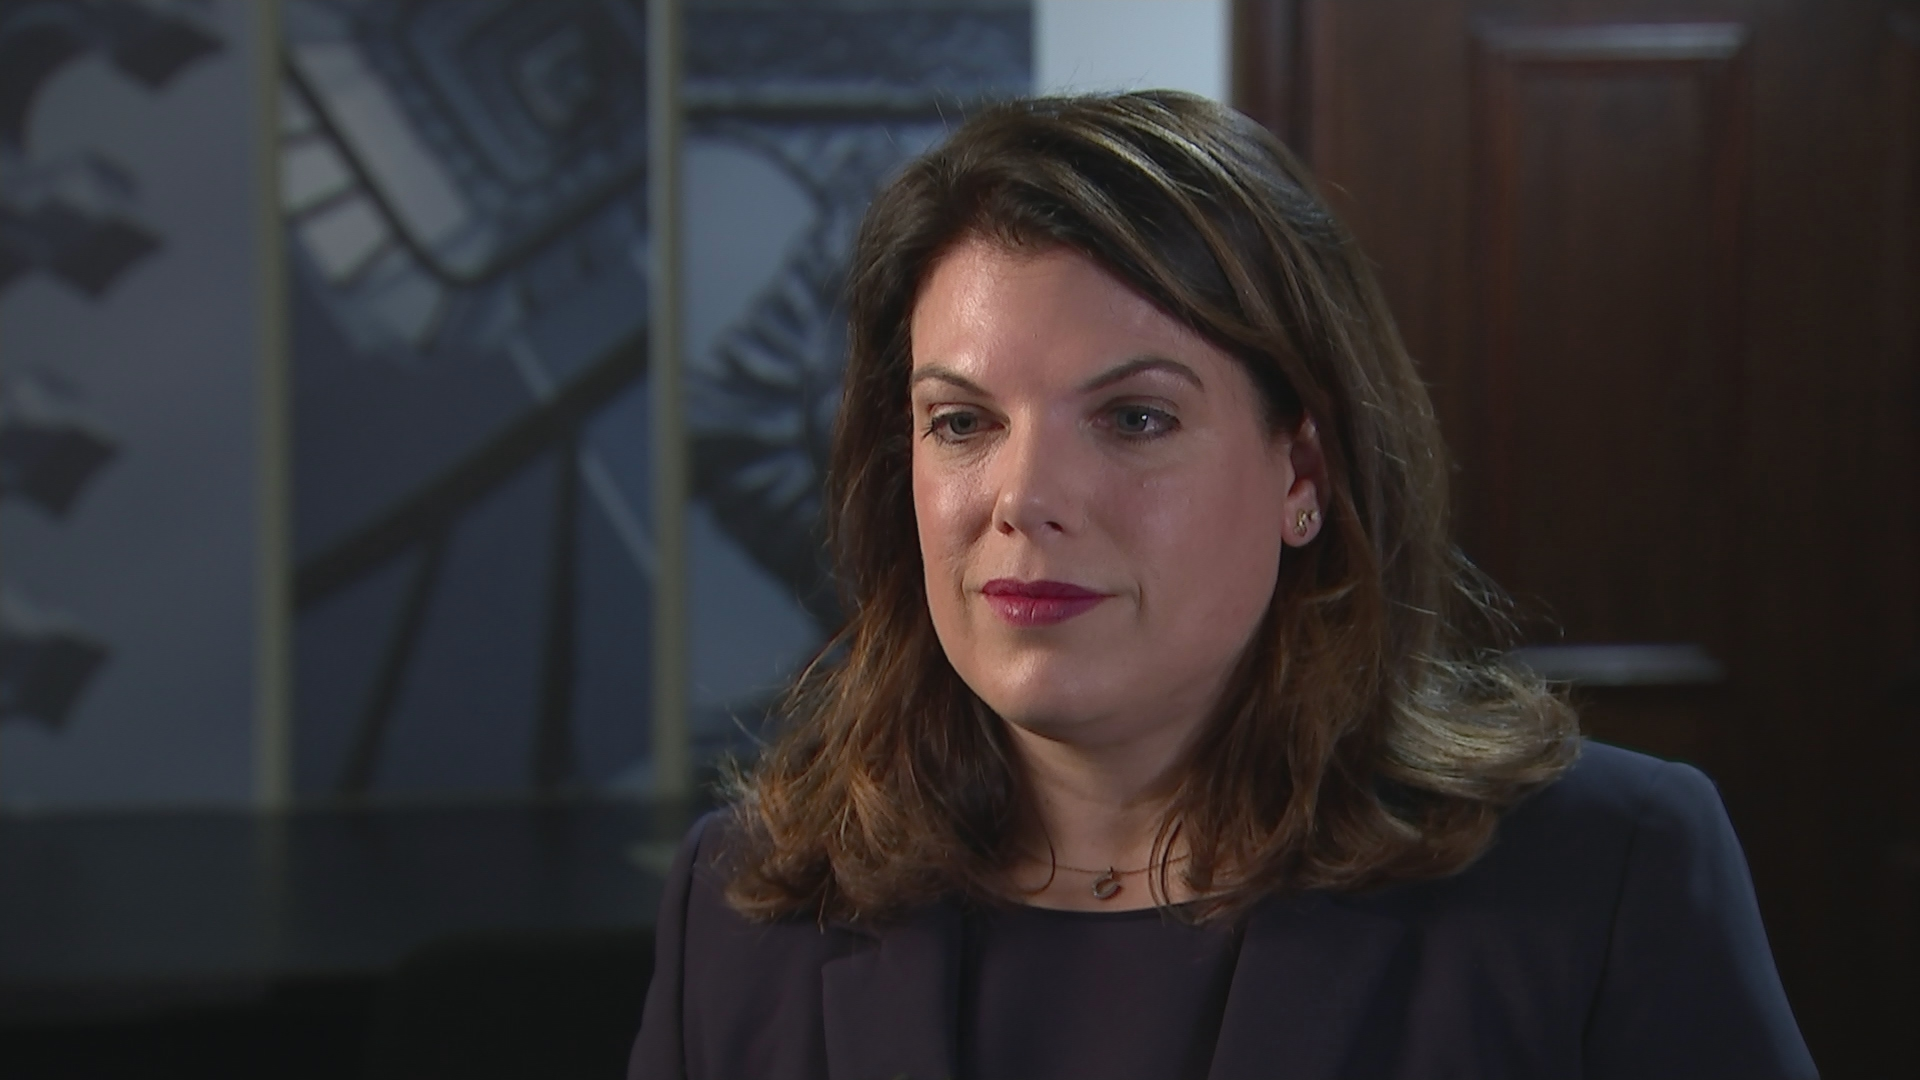 caroline nokes   u2018i u2019m very sorry that this has come about  but my main priority is to put it